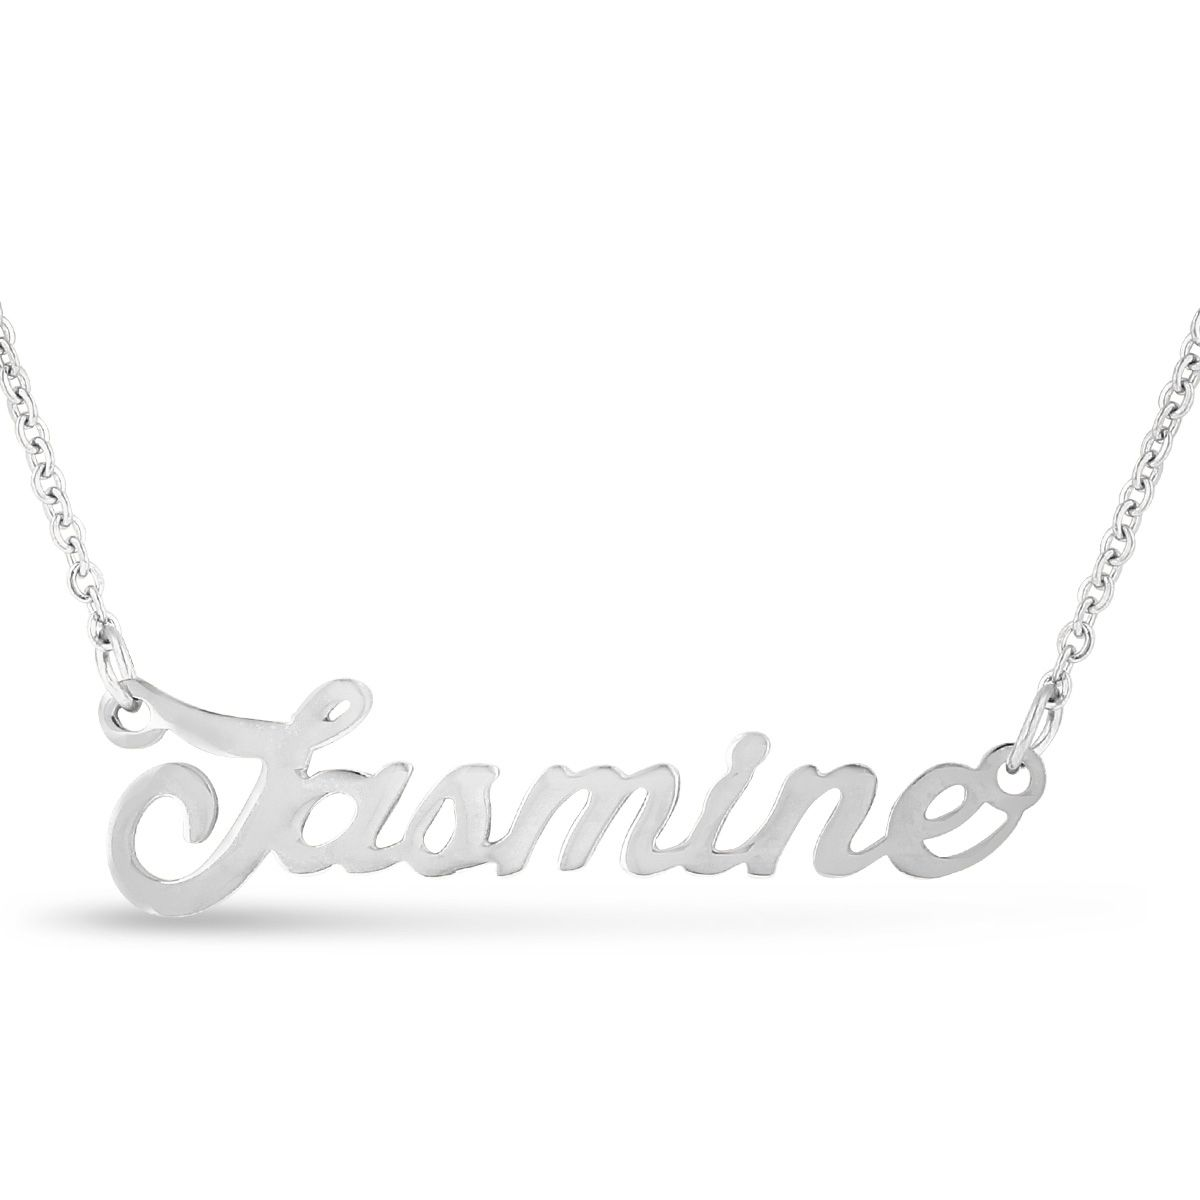 f95ceda9aad64 Overlay 'Jasmine' Nameplate Necklace | Products in 2019 | Jewelry ...